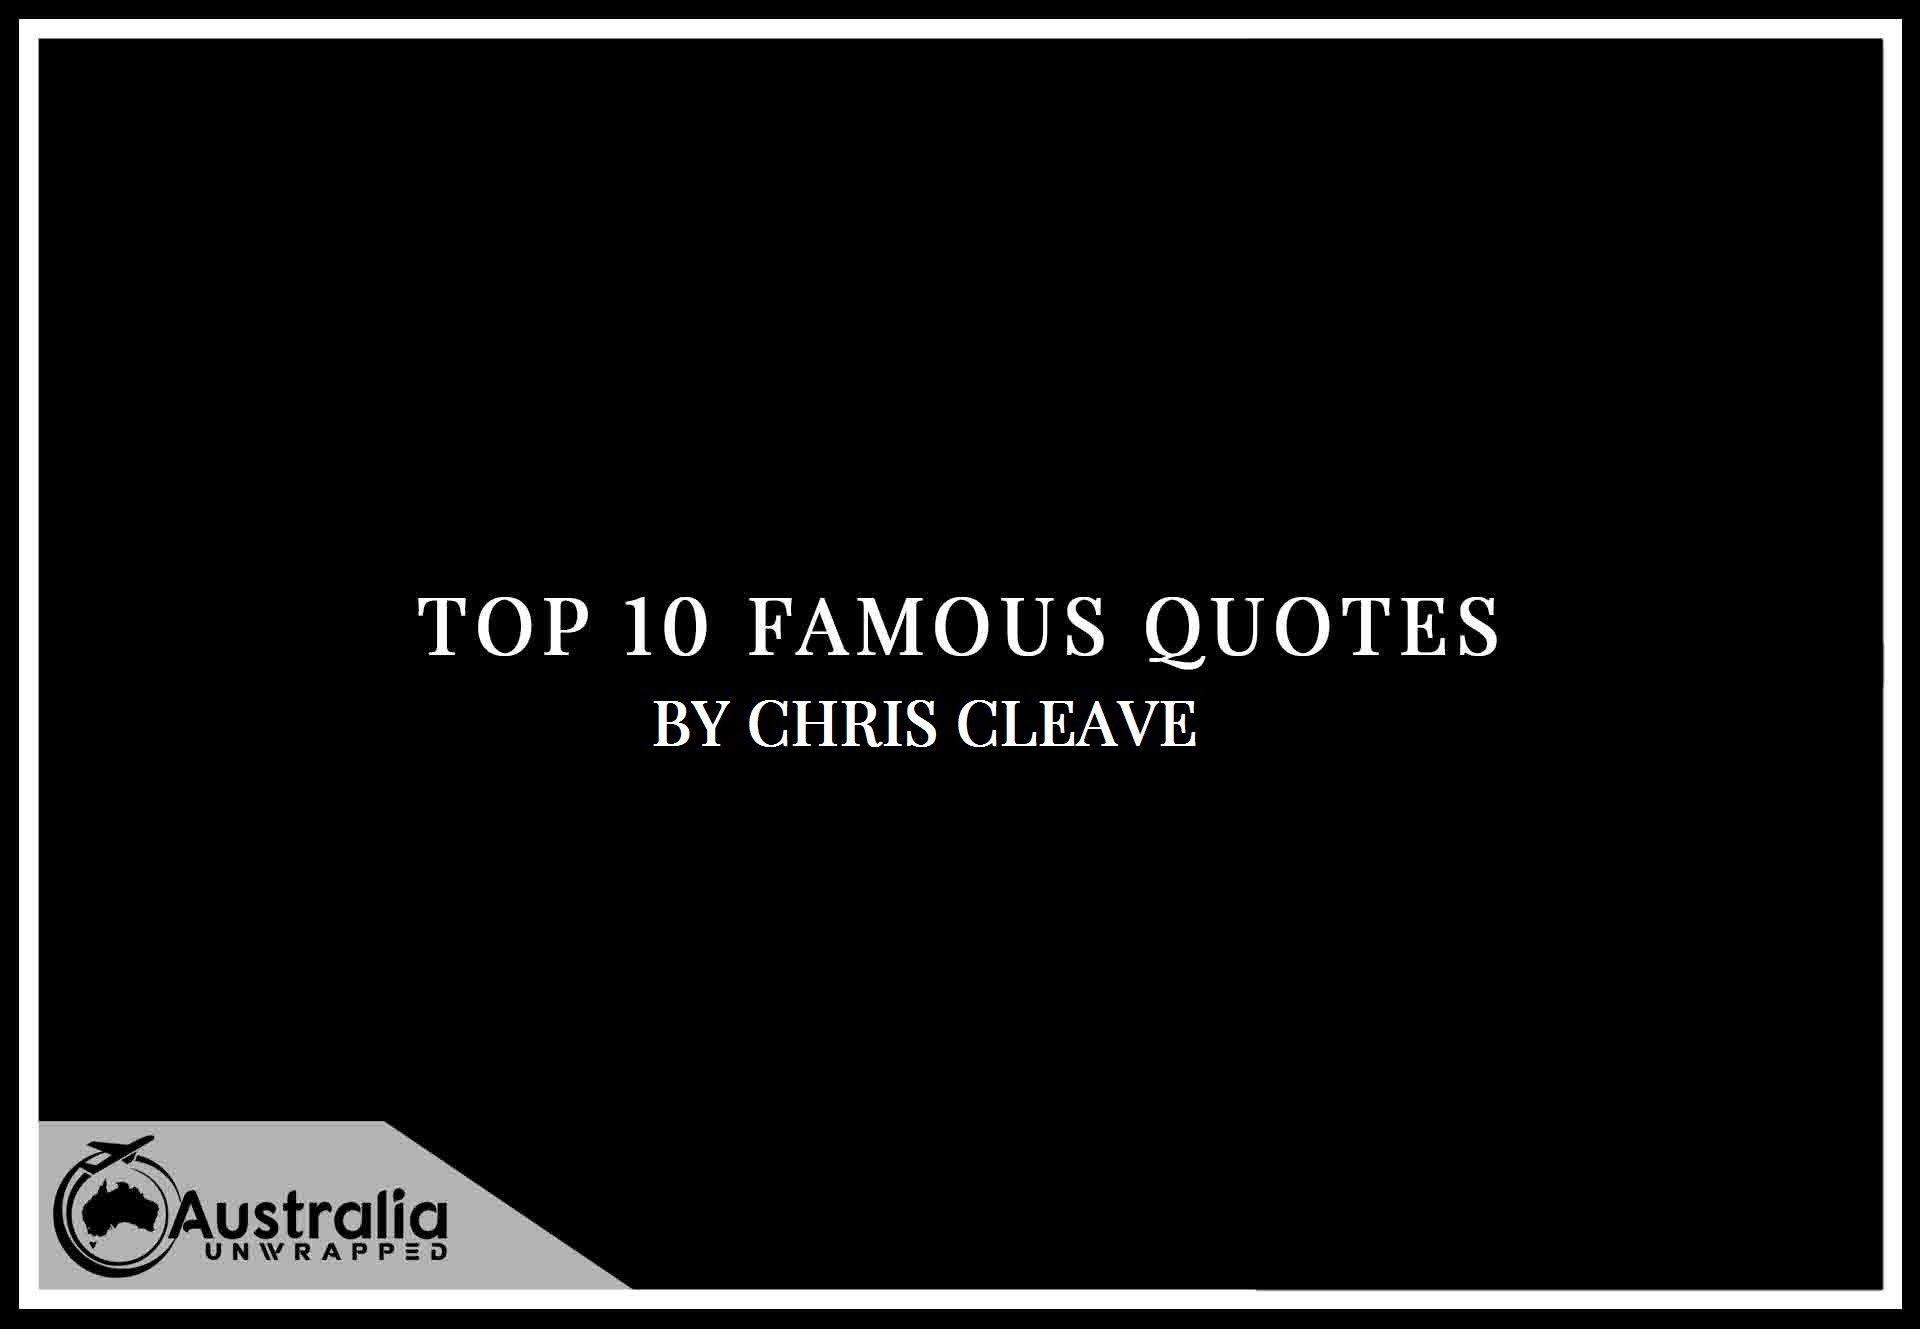 Chris Cleave's Top 10 Popular and Famous Quotes